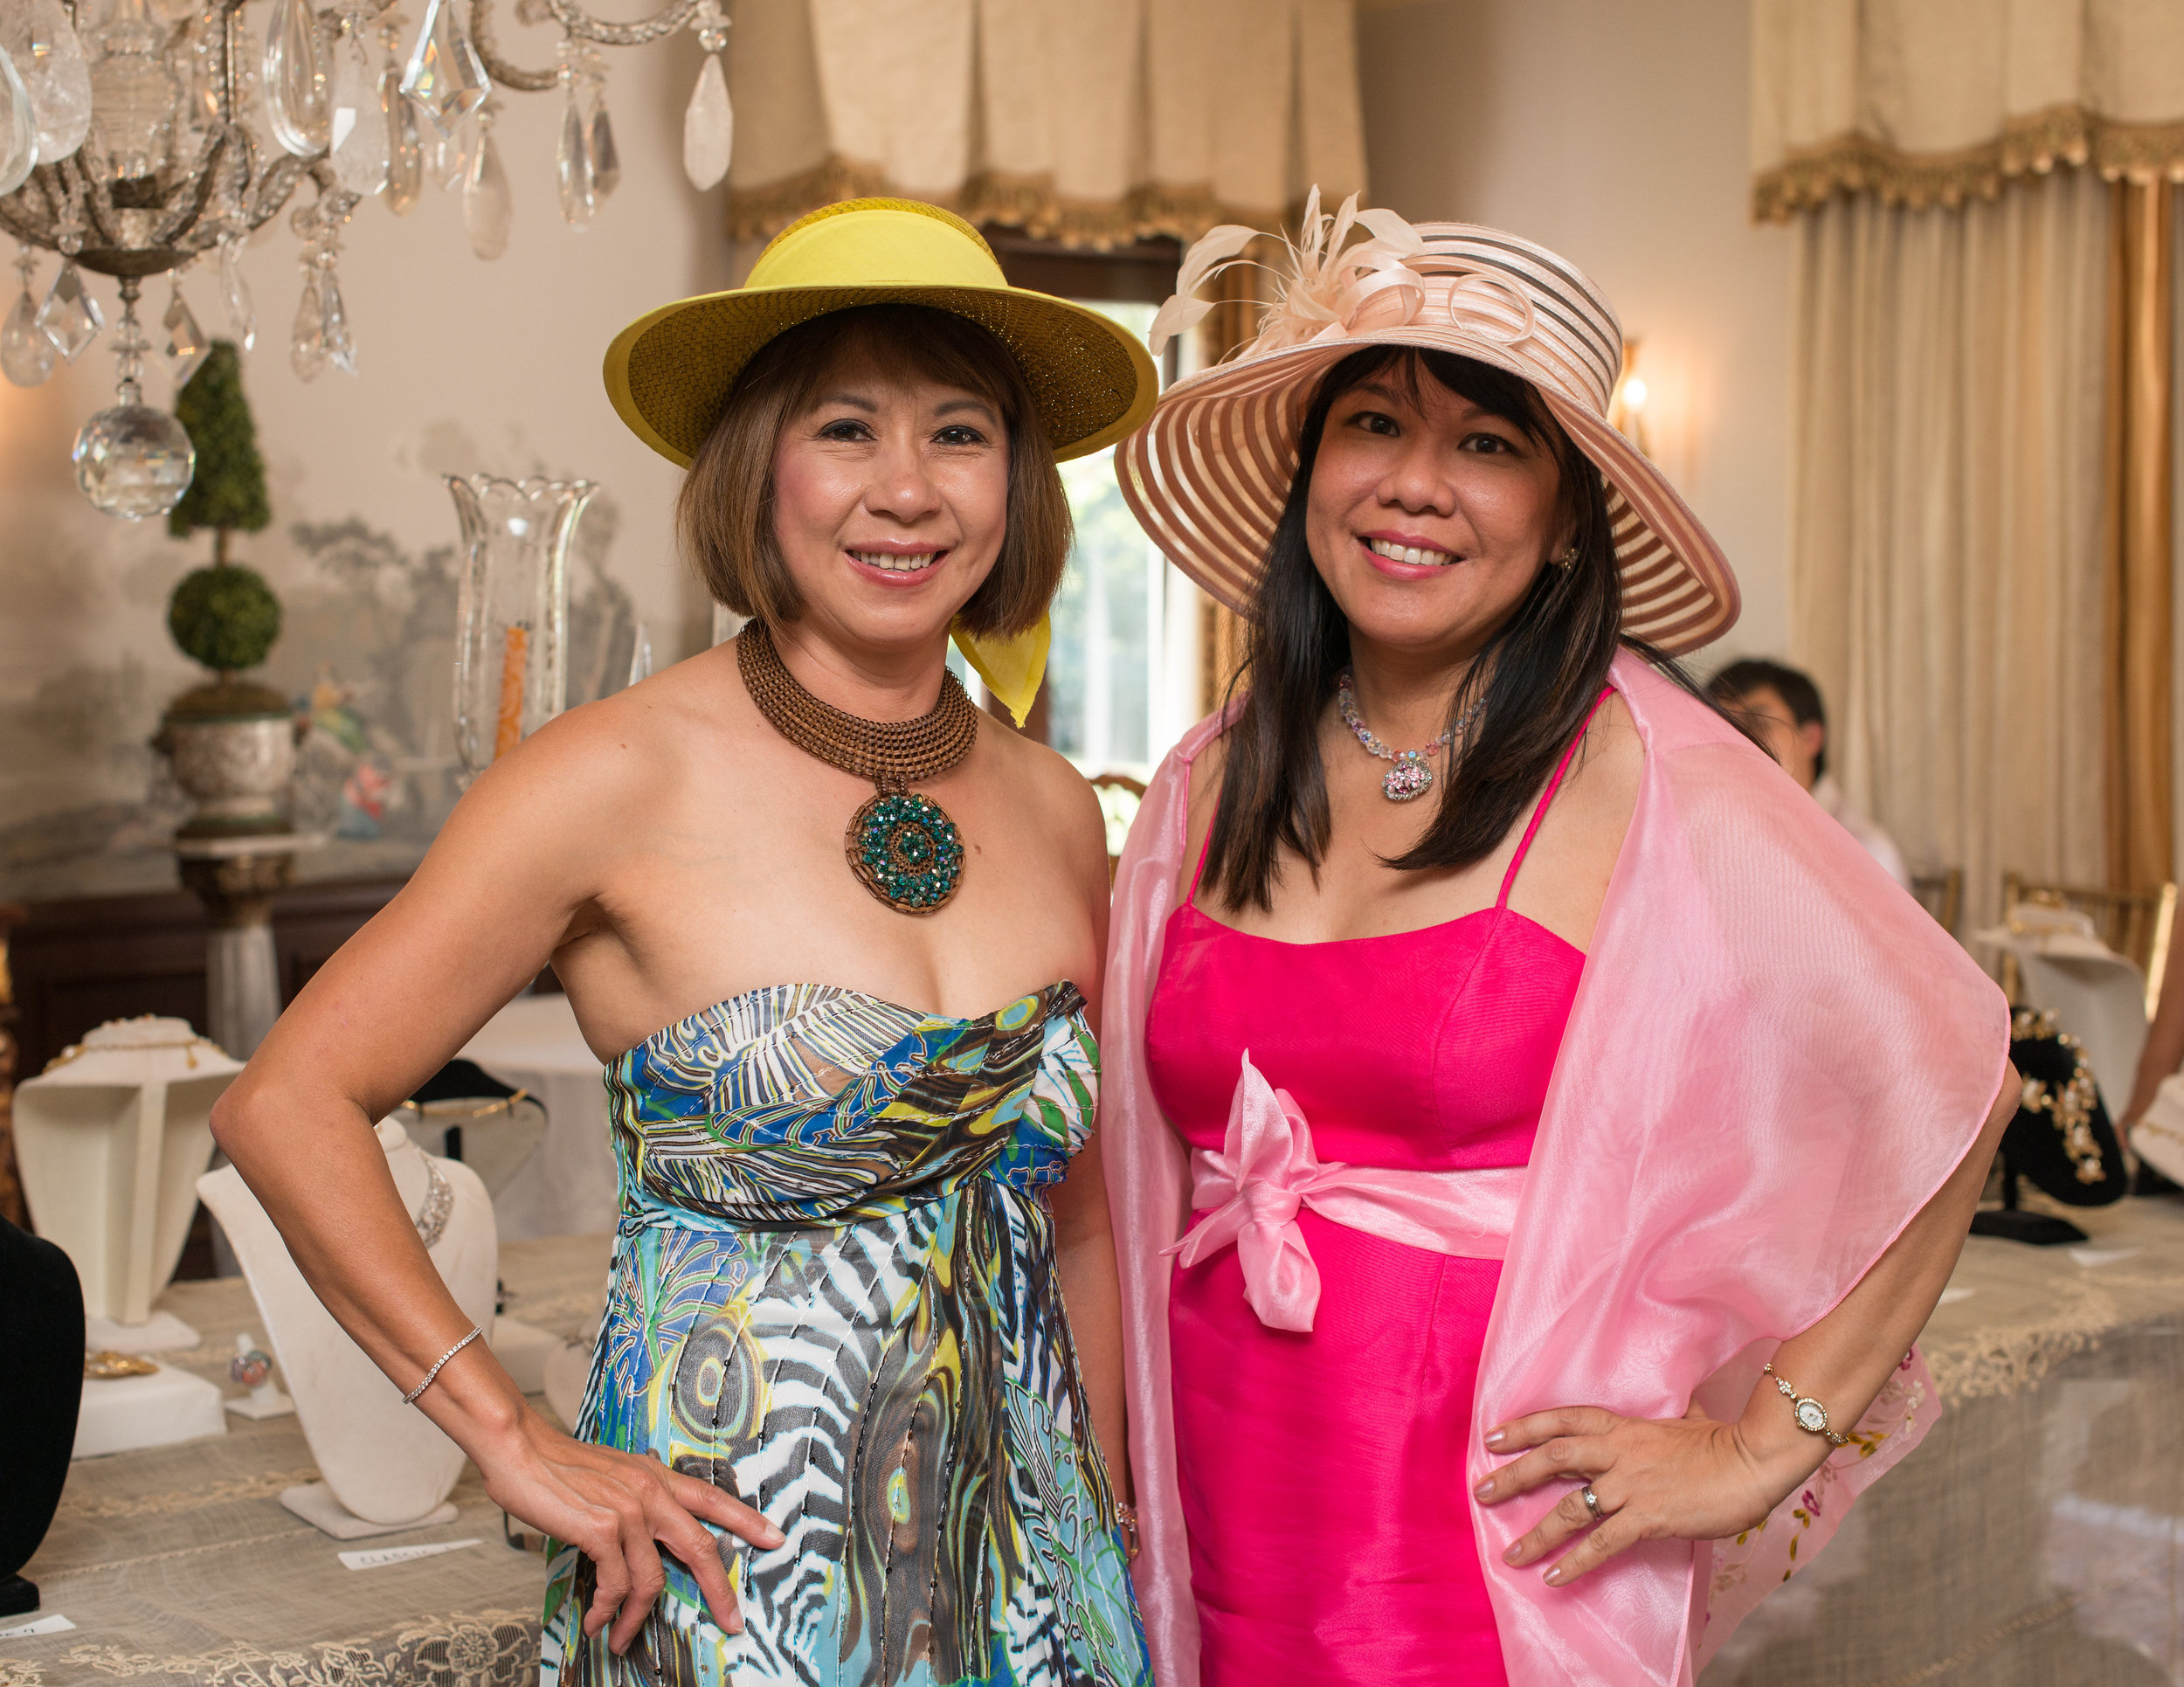 Tea party attendees in lovely summer hats